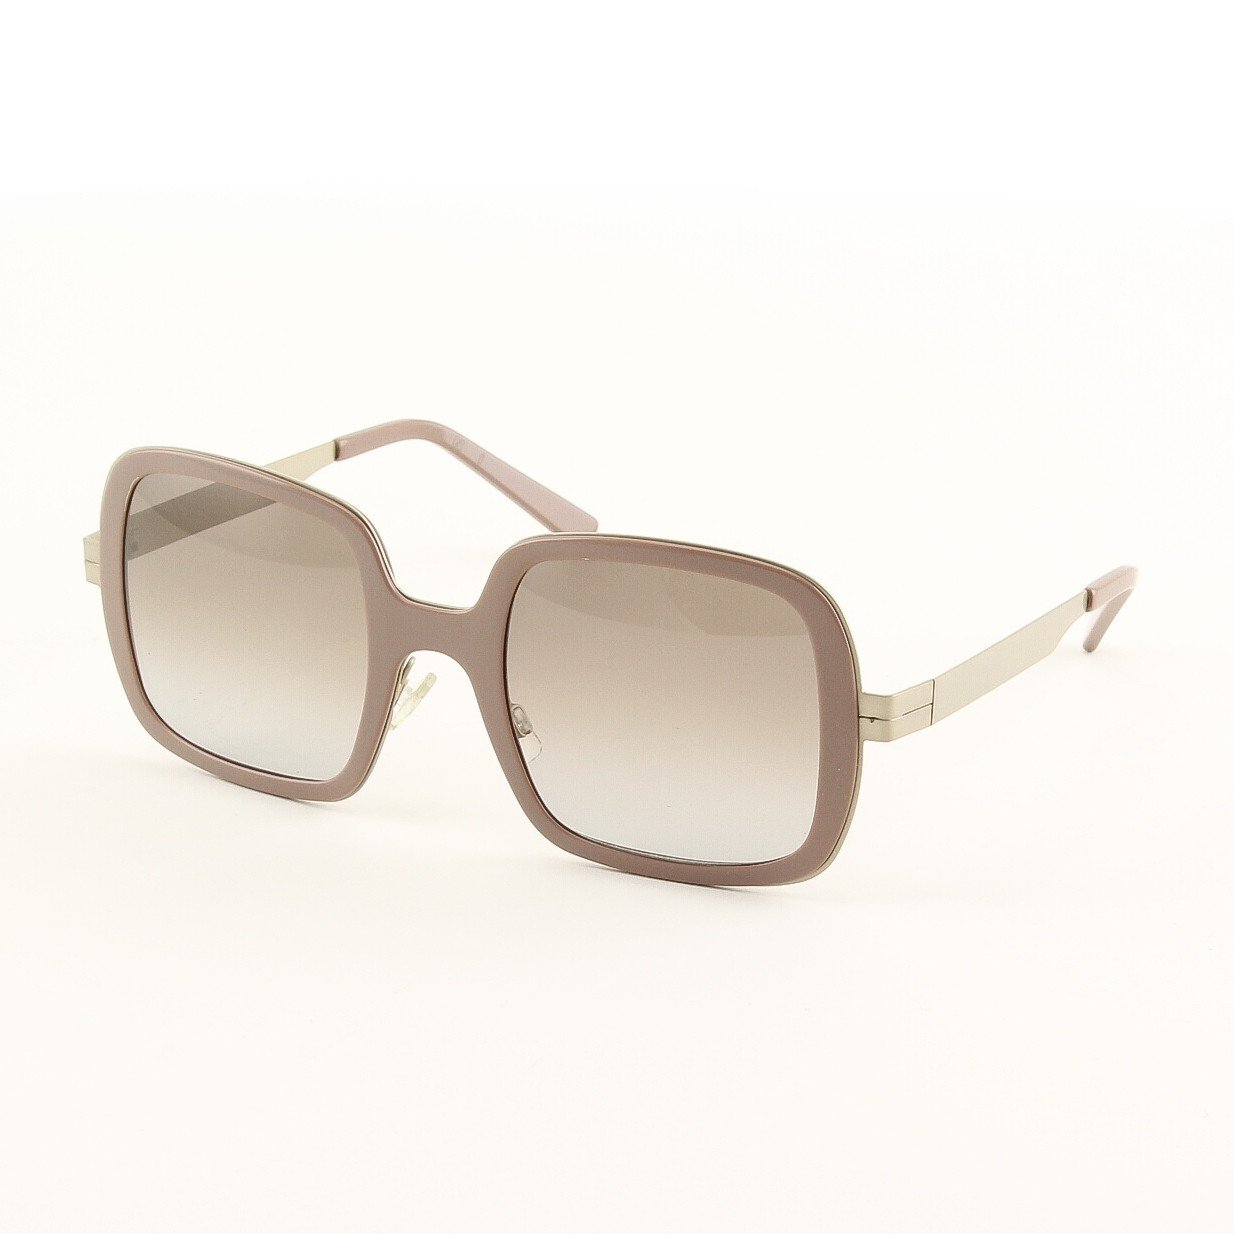 Marni MA159 Sunglasses 06 Dusty Pink Frame w/ Brown Gradient Lenses